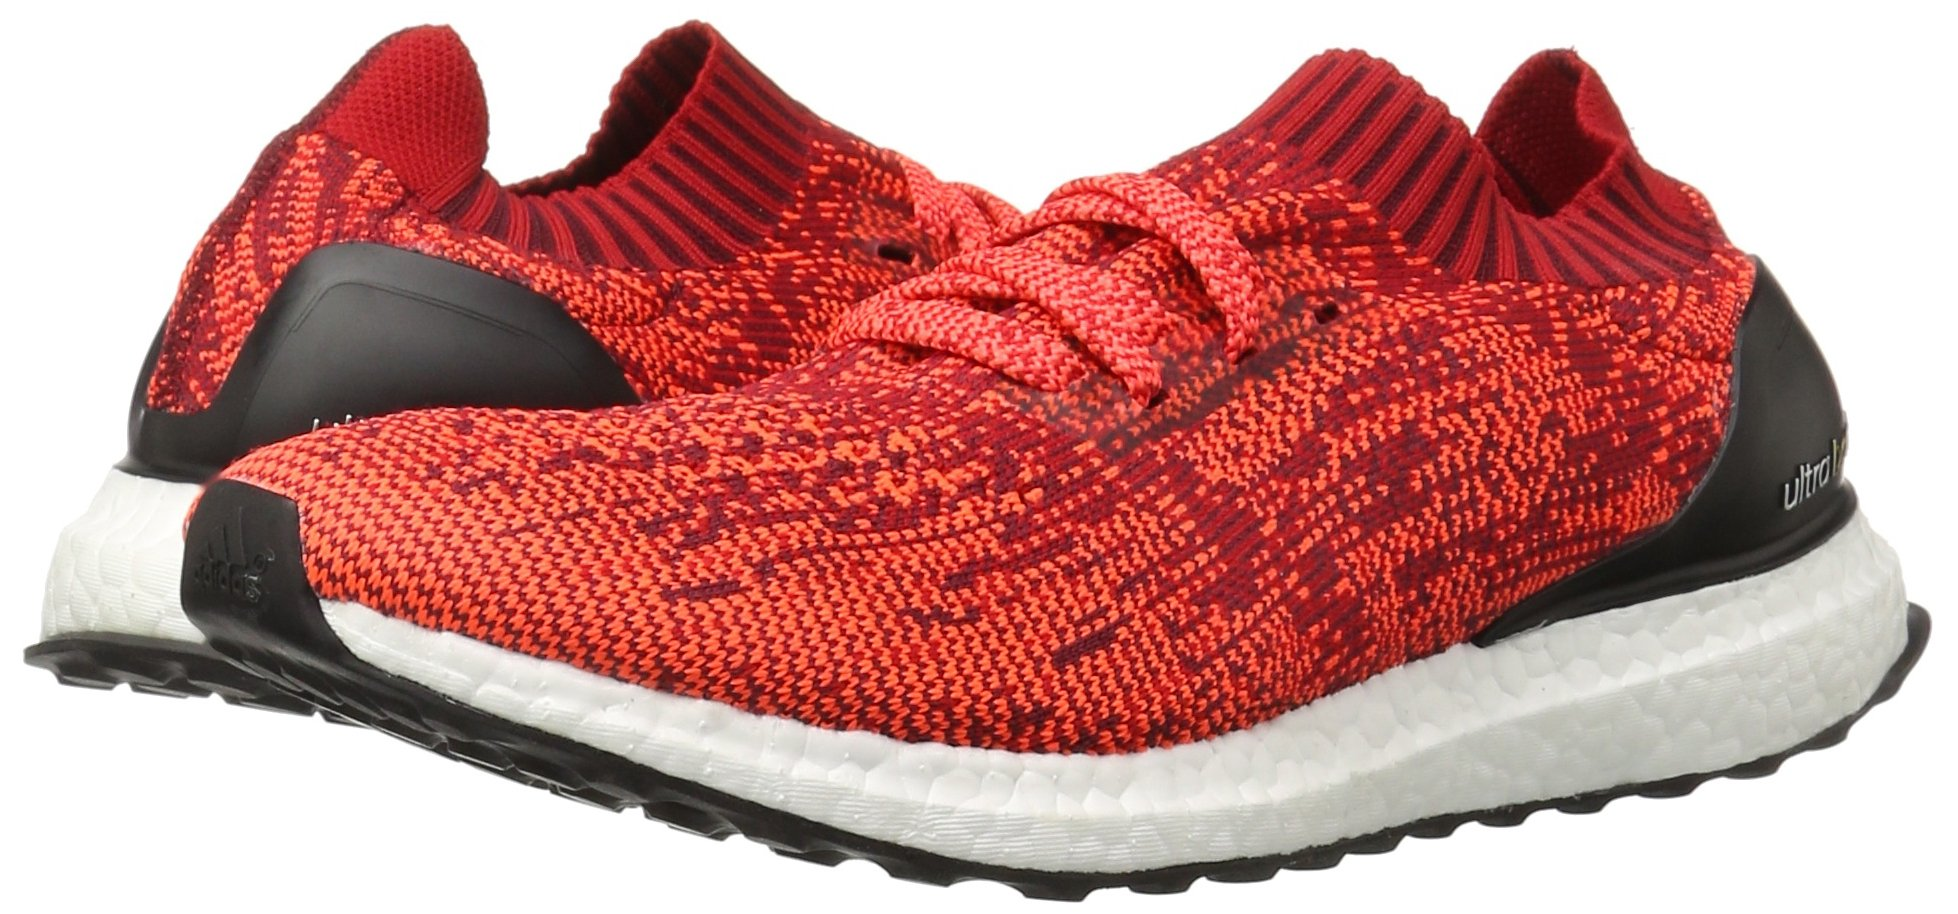 81e9O8b6oqL - adidas Ultra Boost Uncaged Running Shoes